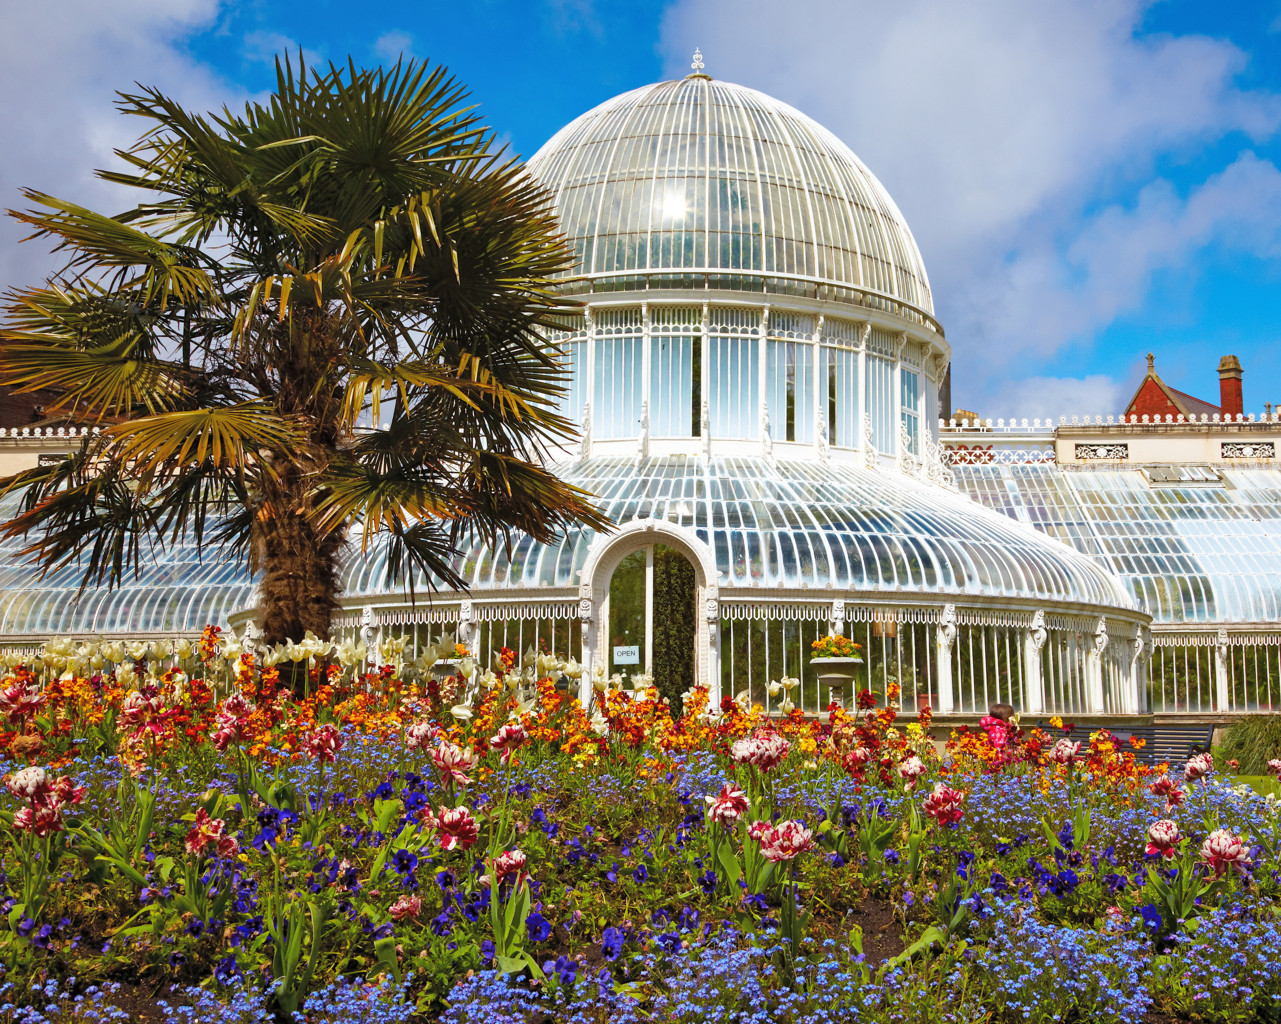 Best greenhouses in Europe - Europe\'s Best Destinations